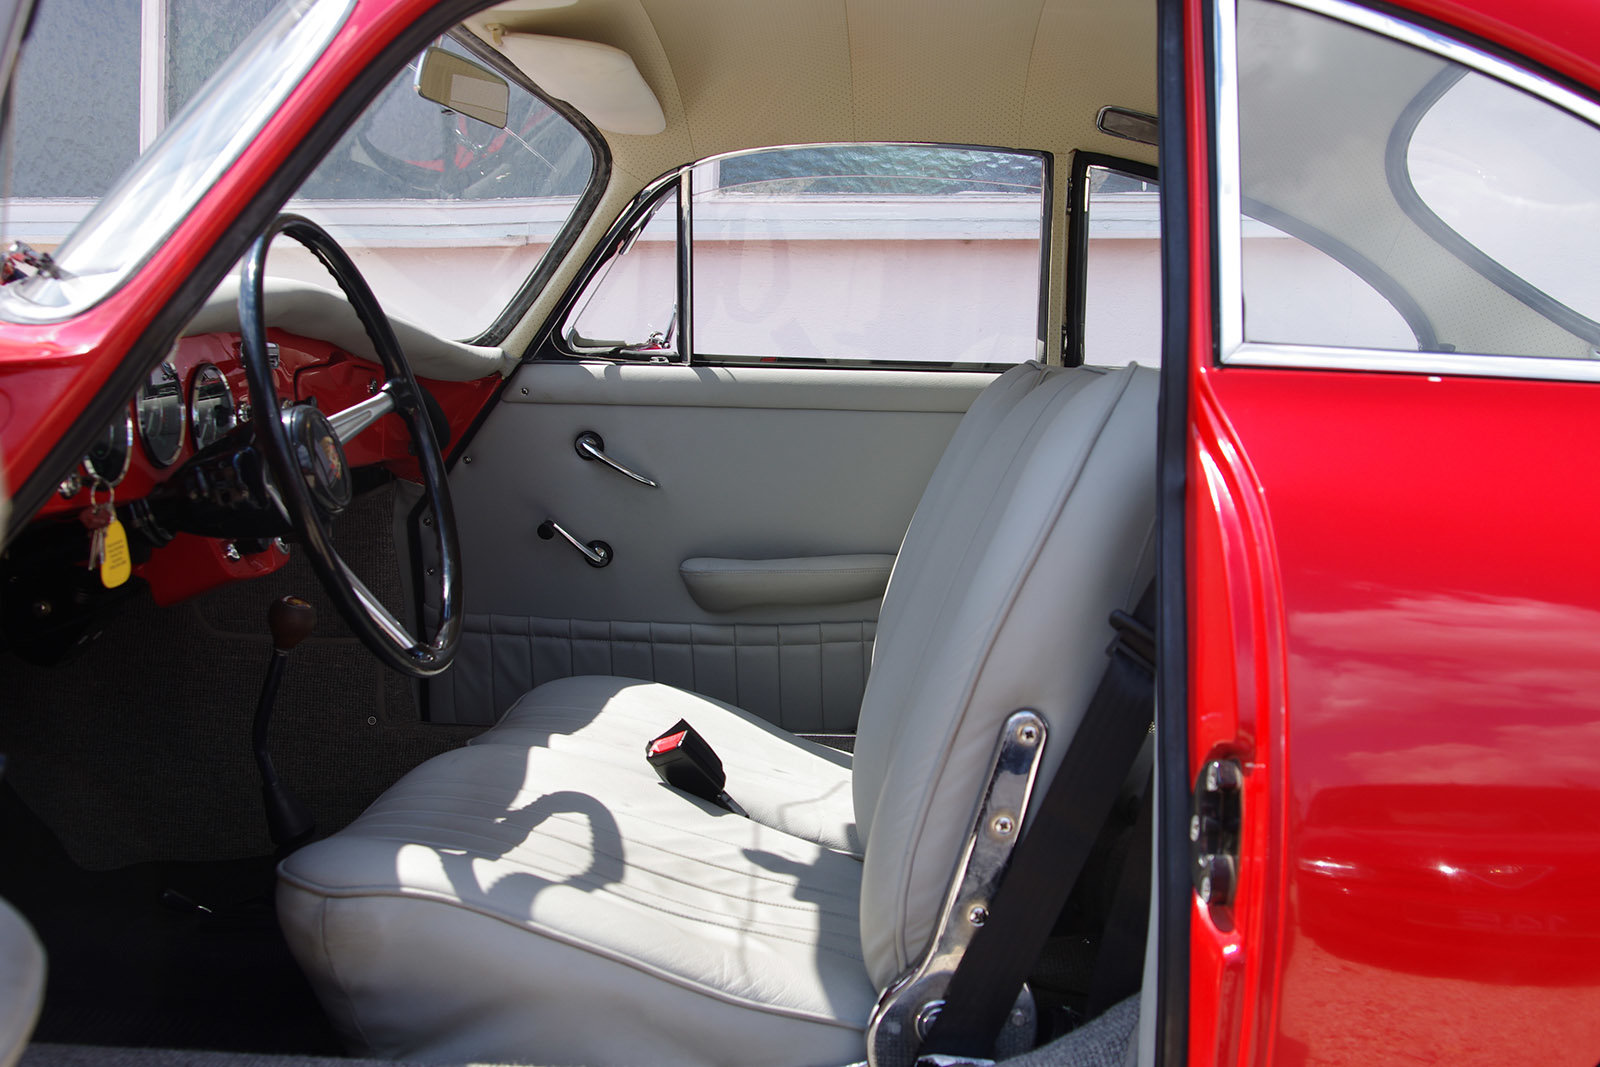 1964 Porsche 356 C Coupé *restored* MATCHING NUMBERS* For Sale (picture 4 of 6)